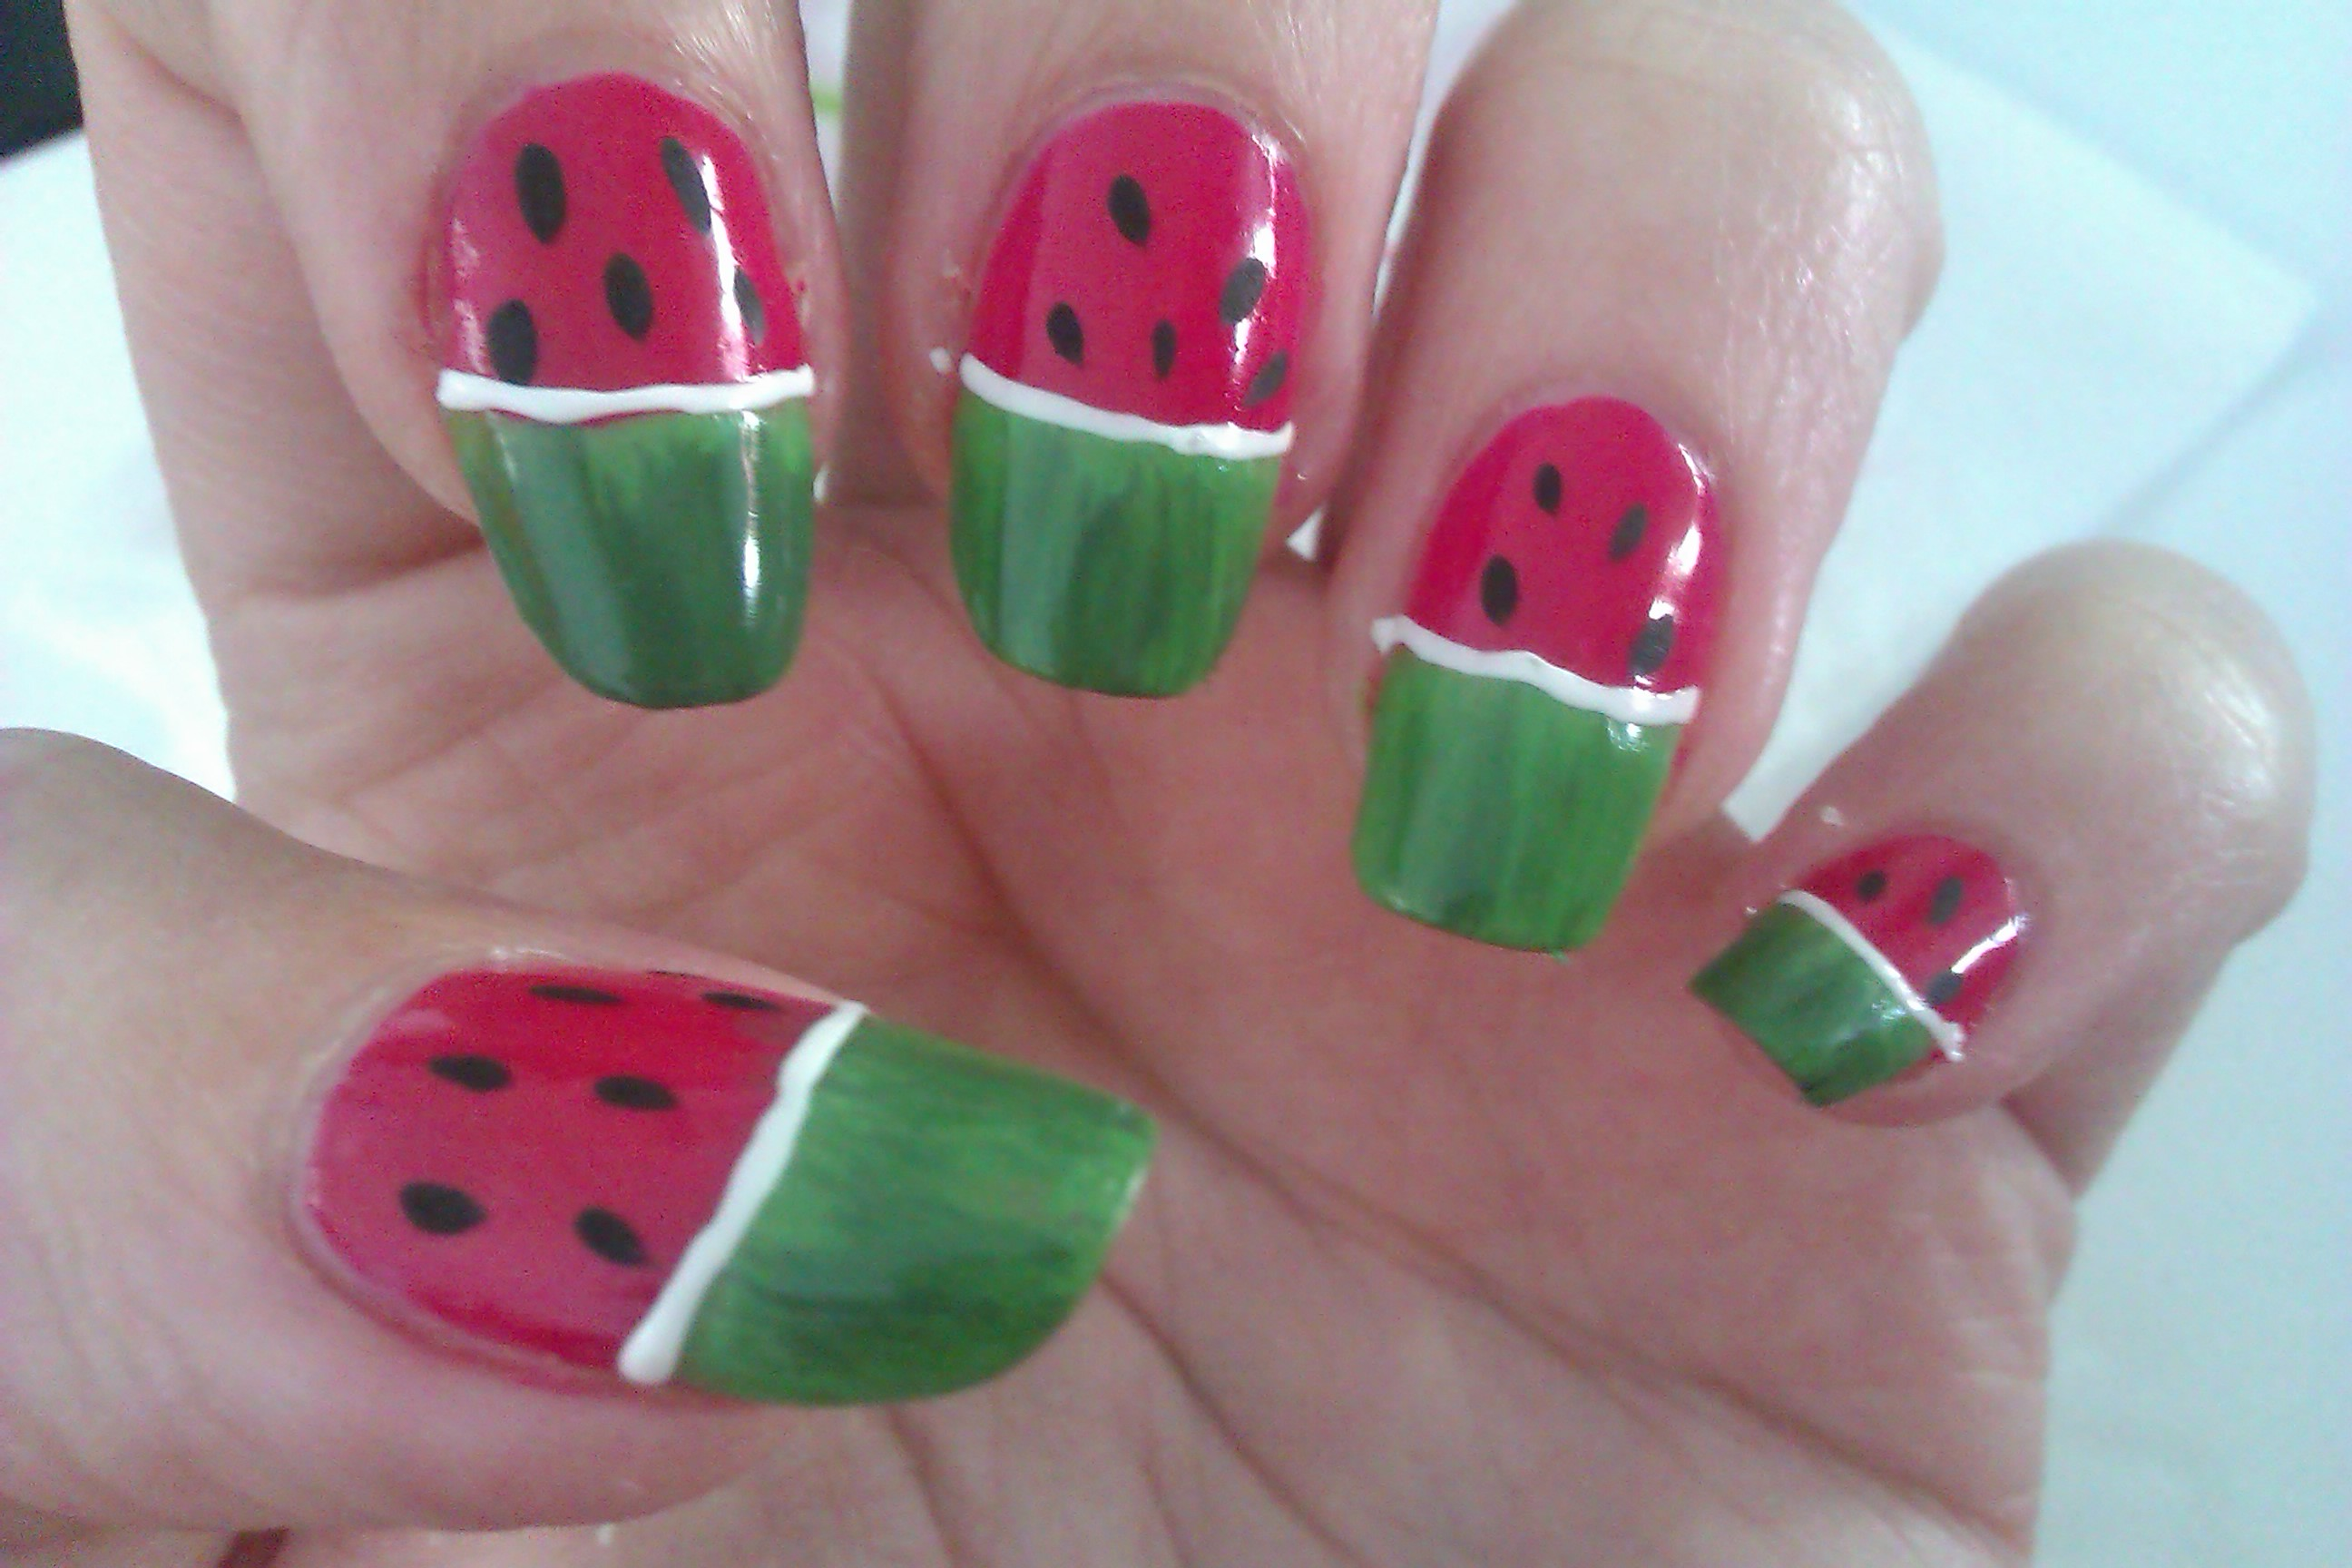 Simple beautiful nail art designs Cool nail design ideas at home